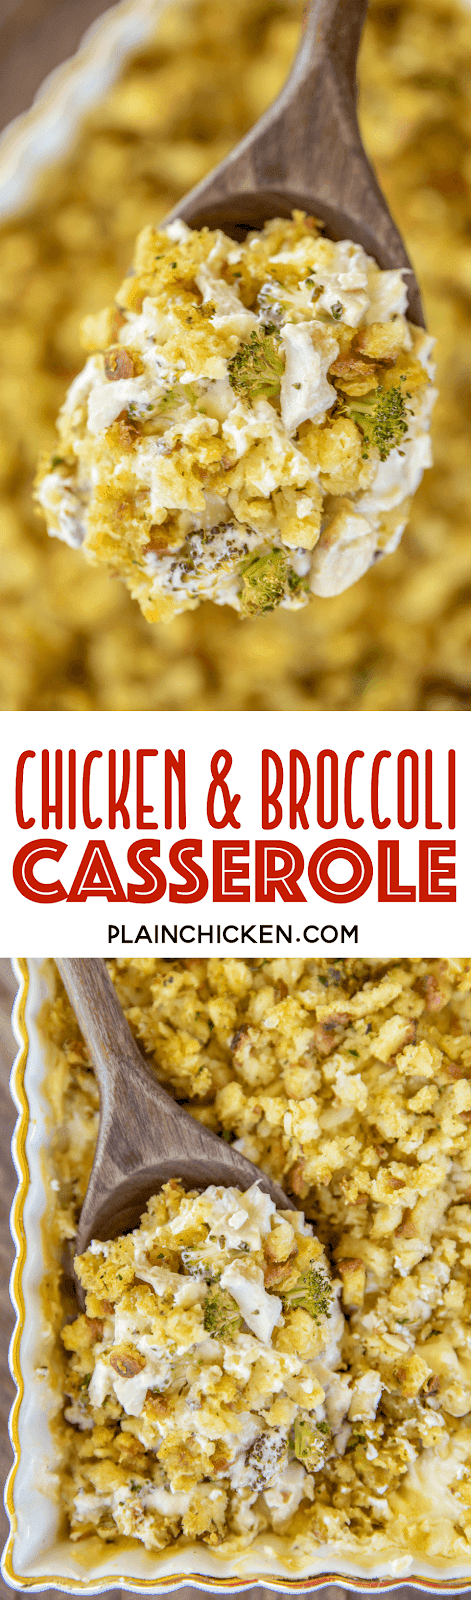 collage of 2 photos of chicken broccoli casserole